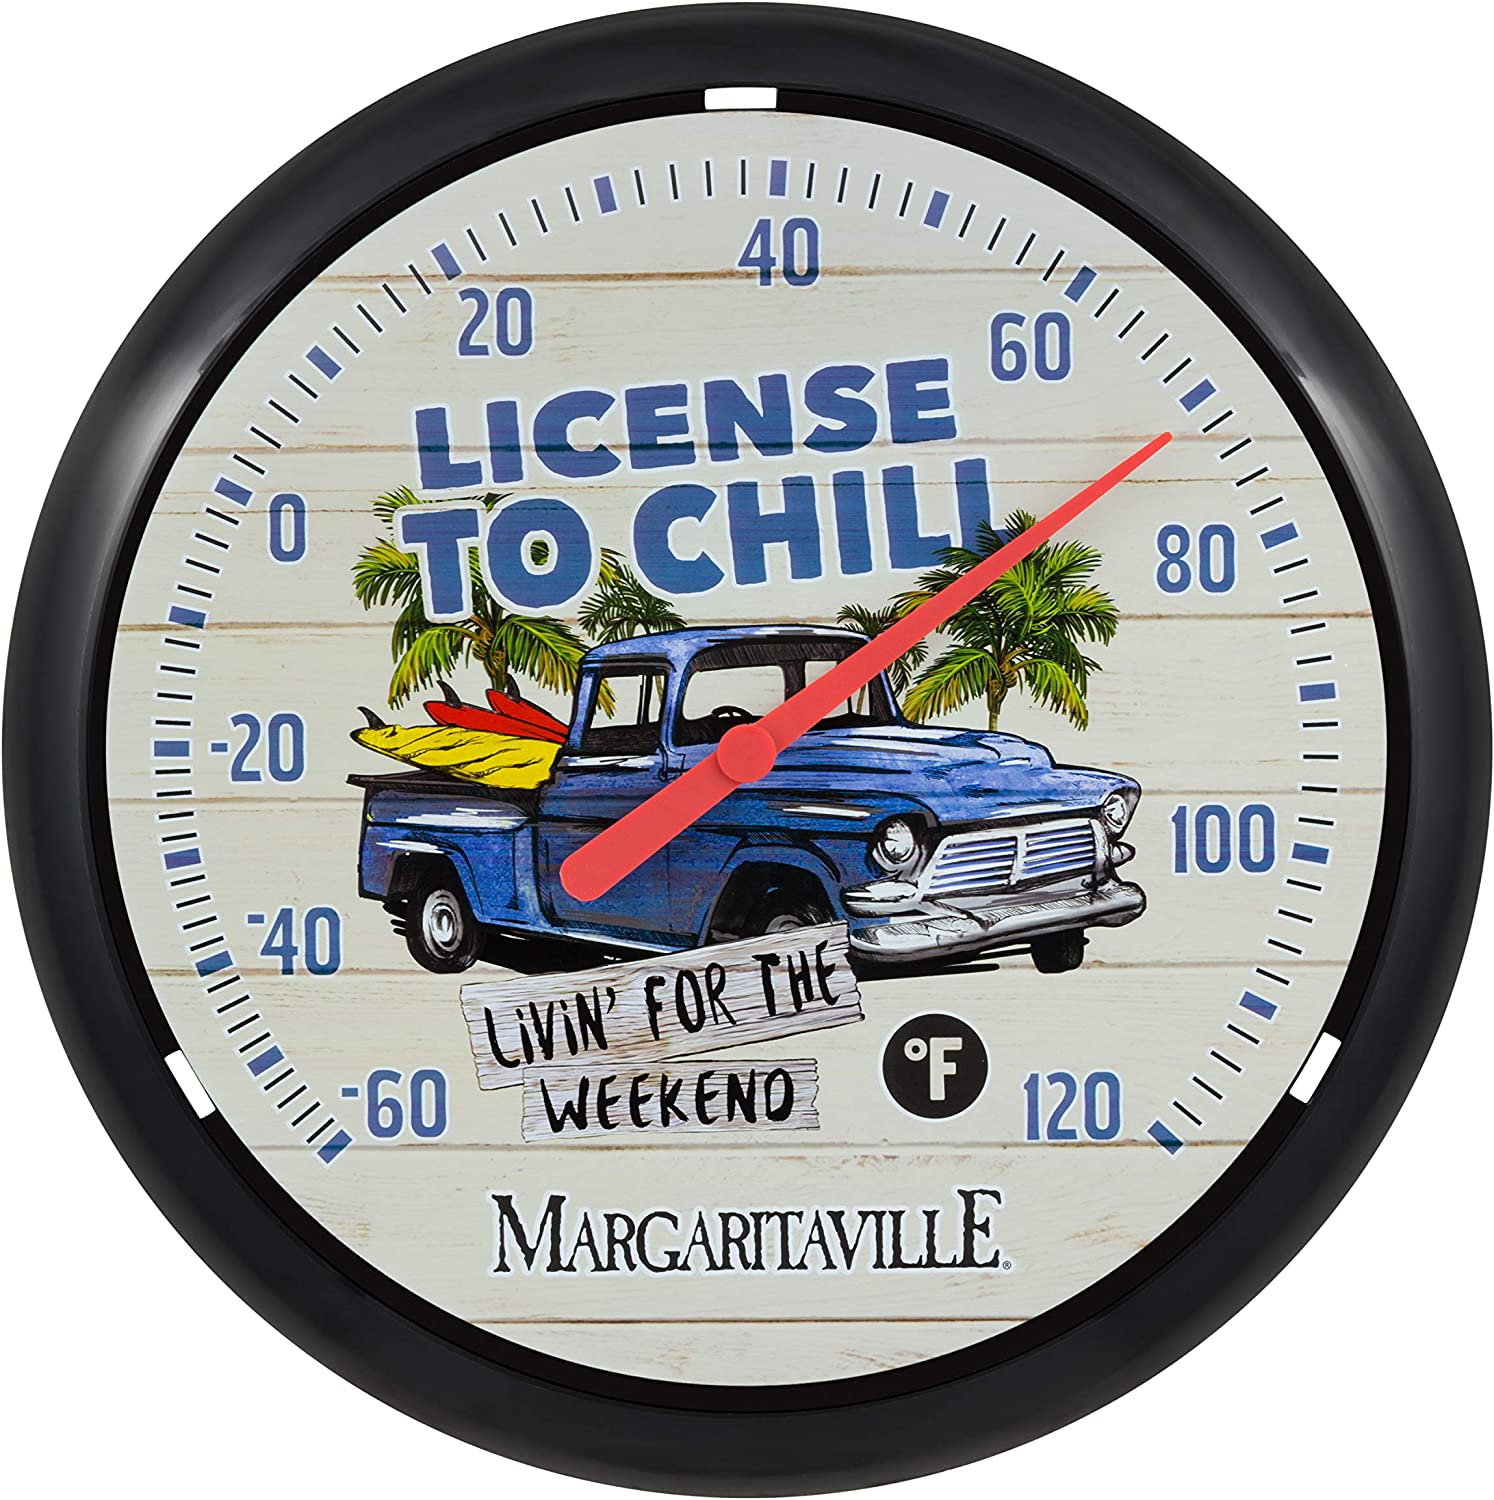 Black La Crosse Technology 104-134B-TBP 13.25-inch License to Chill Margaritaville Analog Dial Thermometer